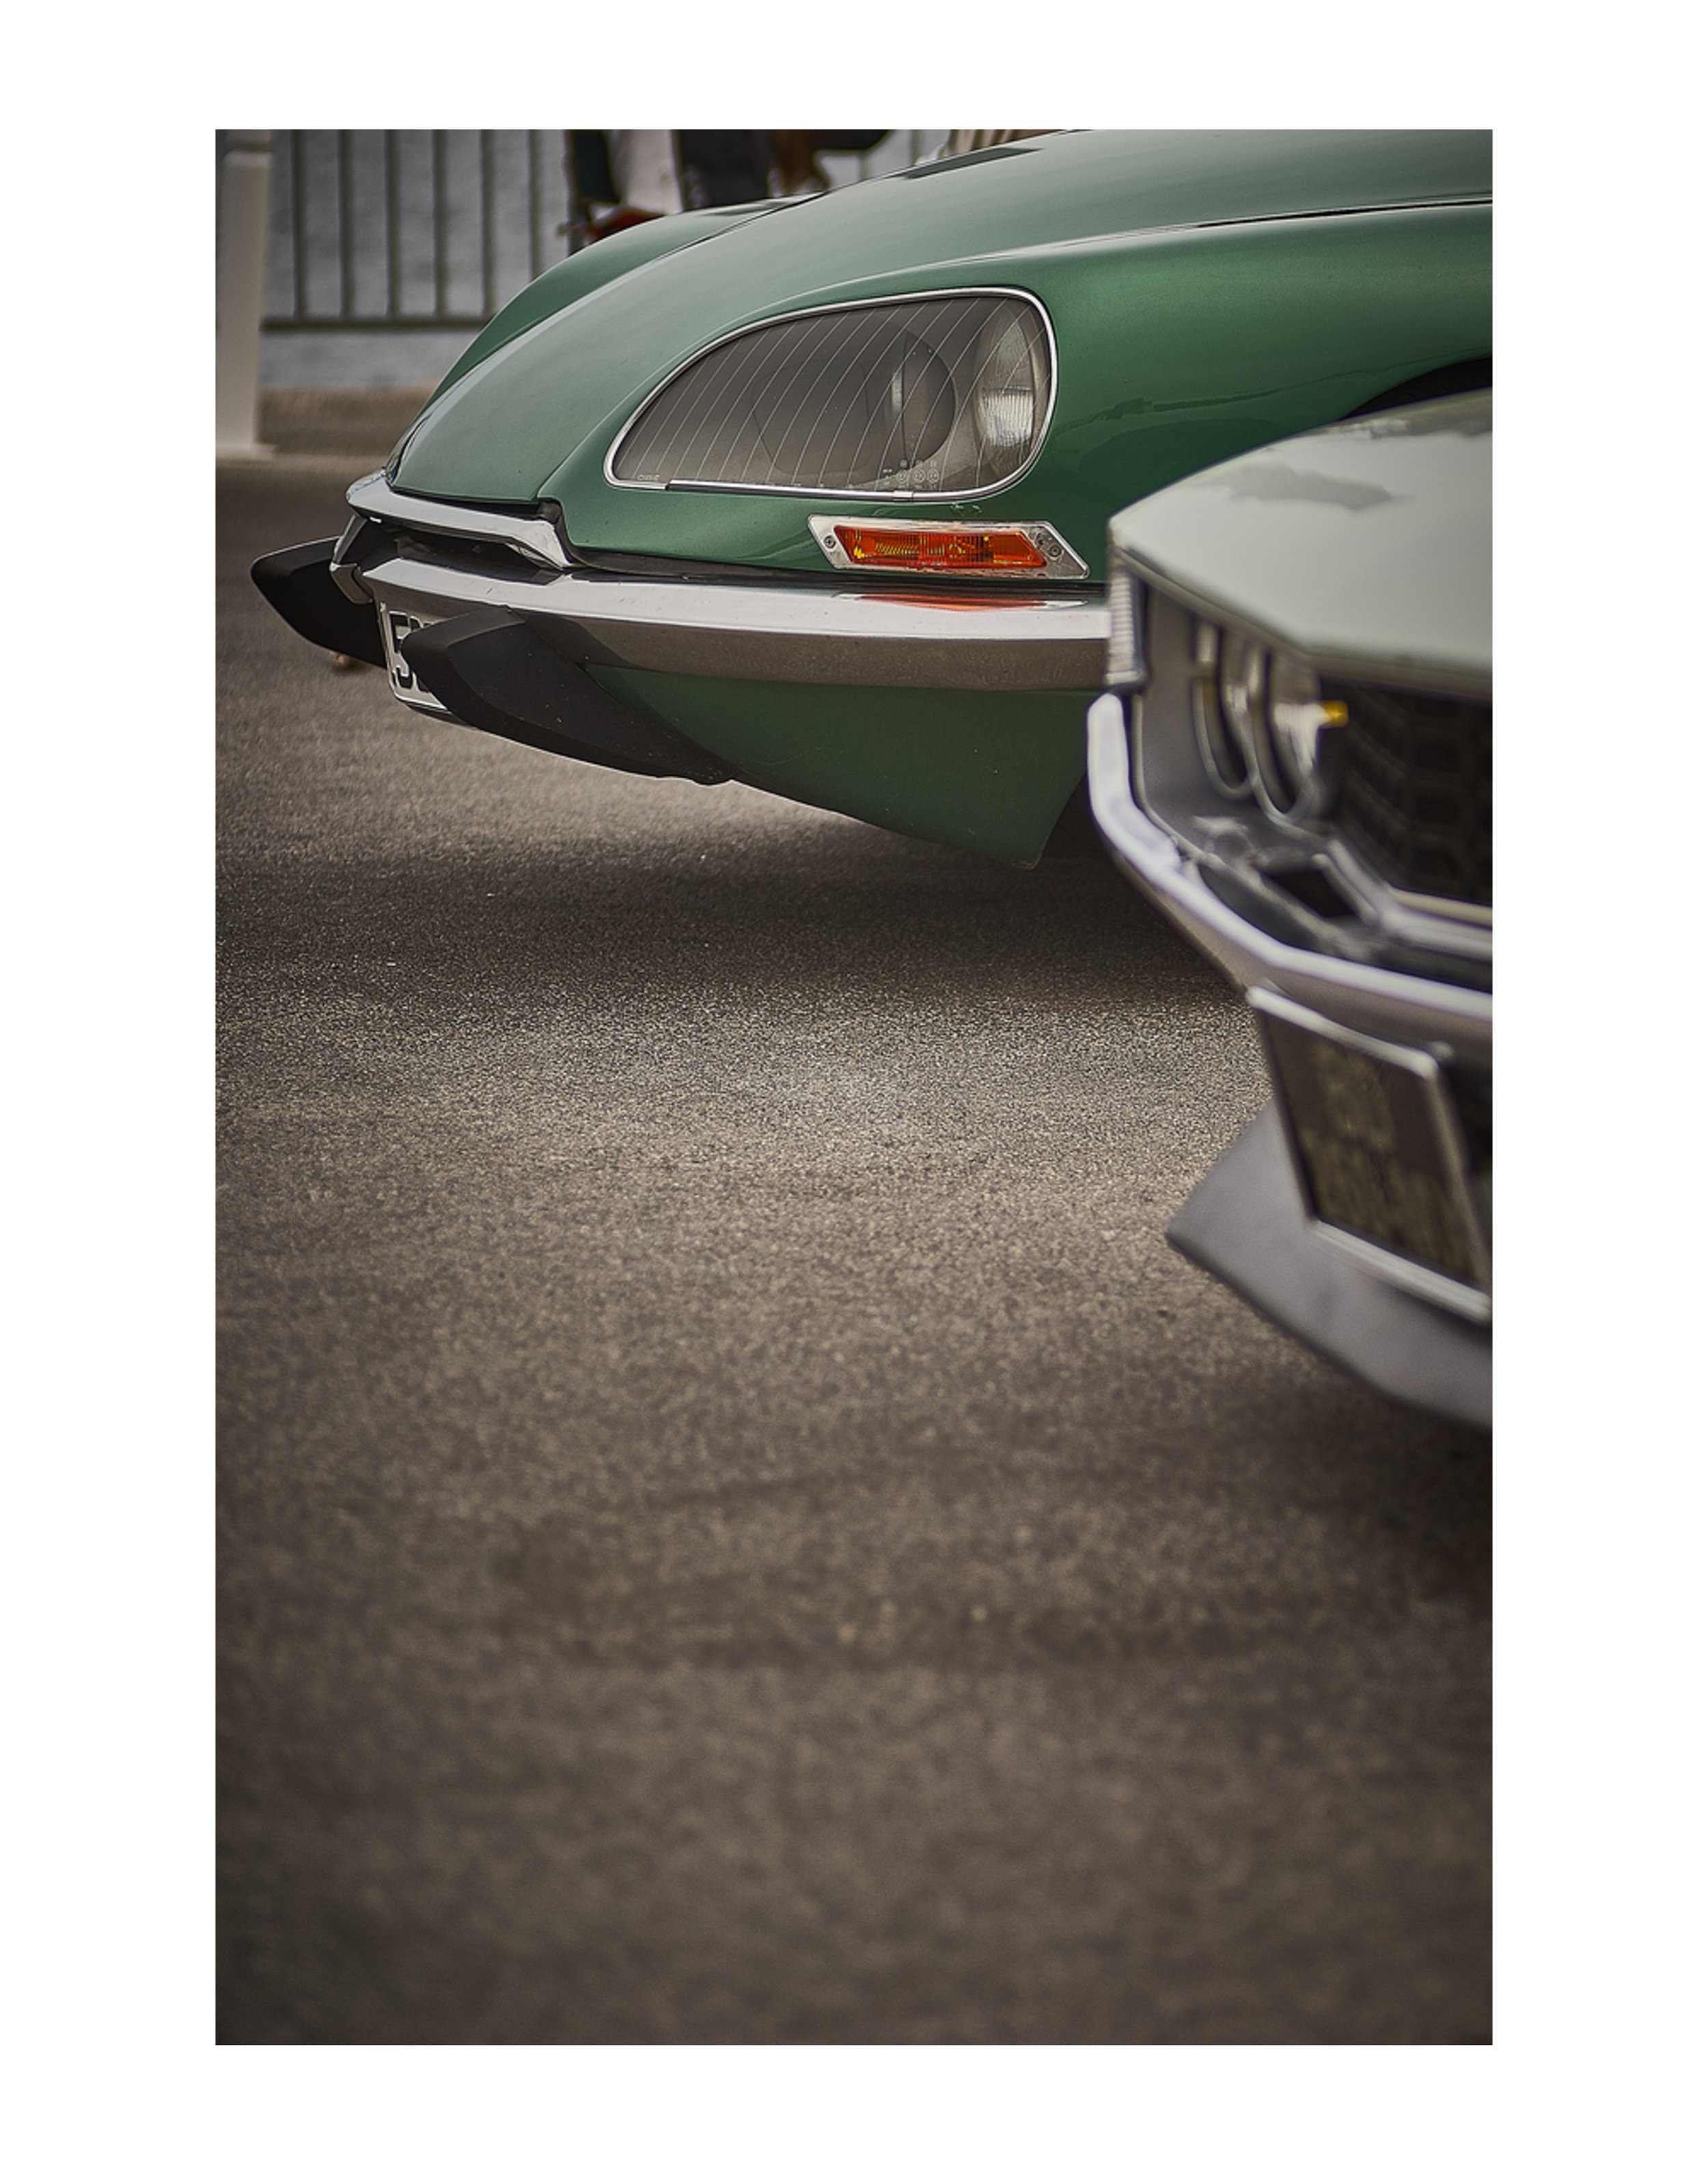 James Mousley Photography-35.jpg